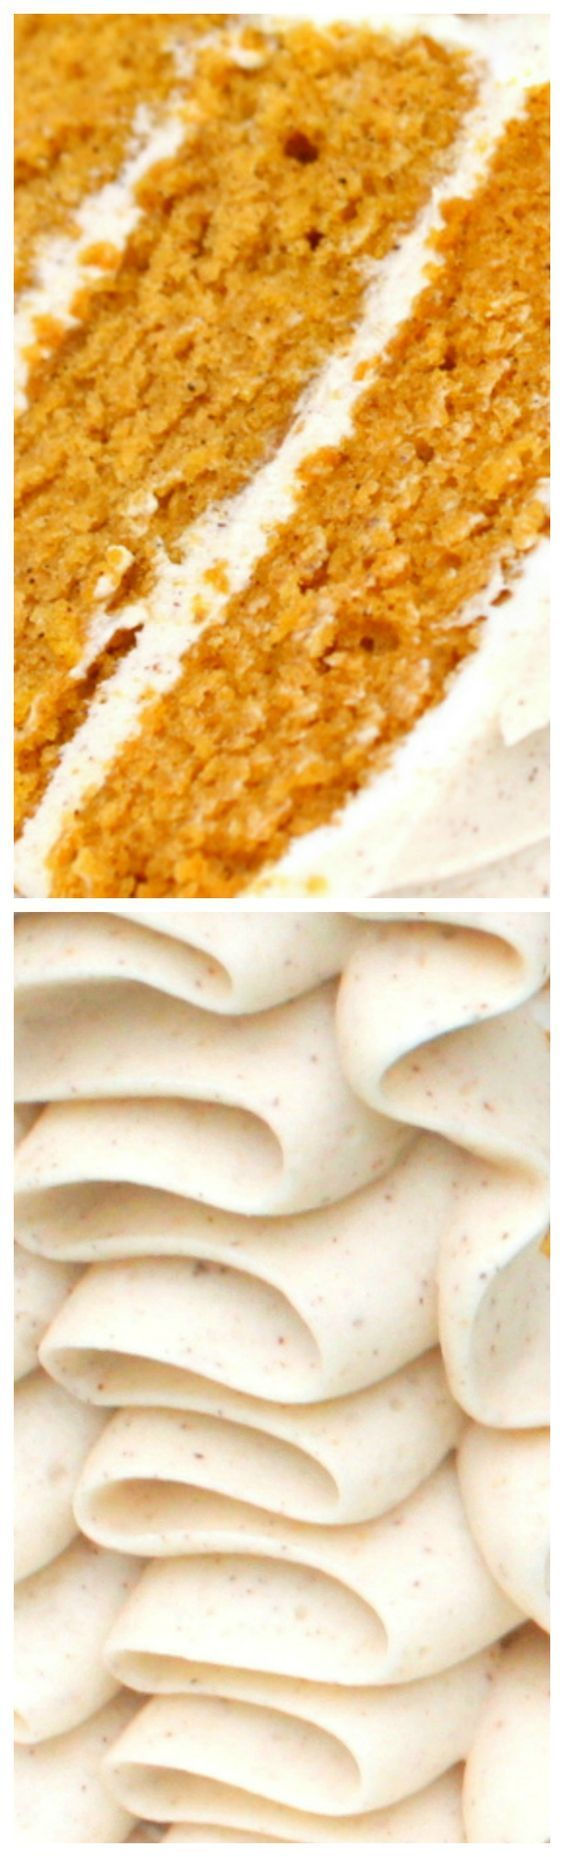 Delicious Homemade Pumpkin Spice Cake from scratch ~ The perfect blend of spices & pumpkin…it is tender and flavorful, with spiced cream cheese frosting - There is just nothing better!